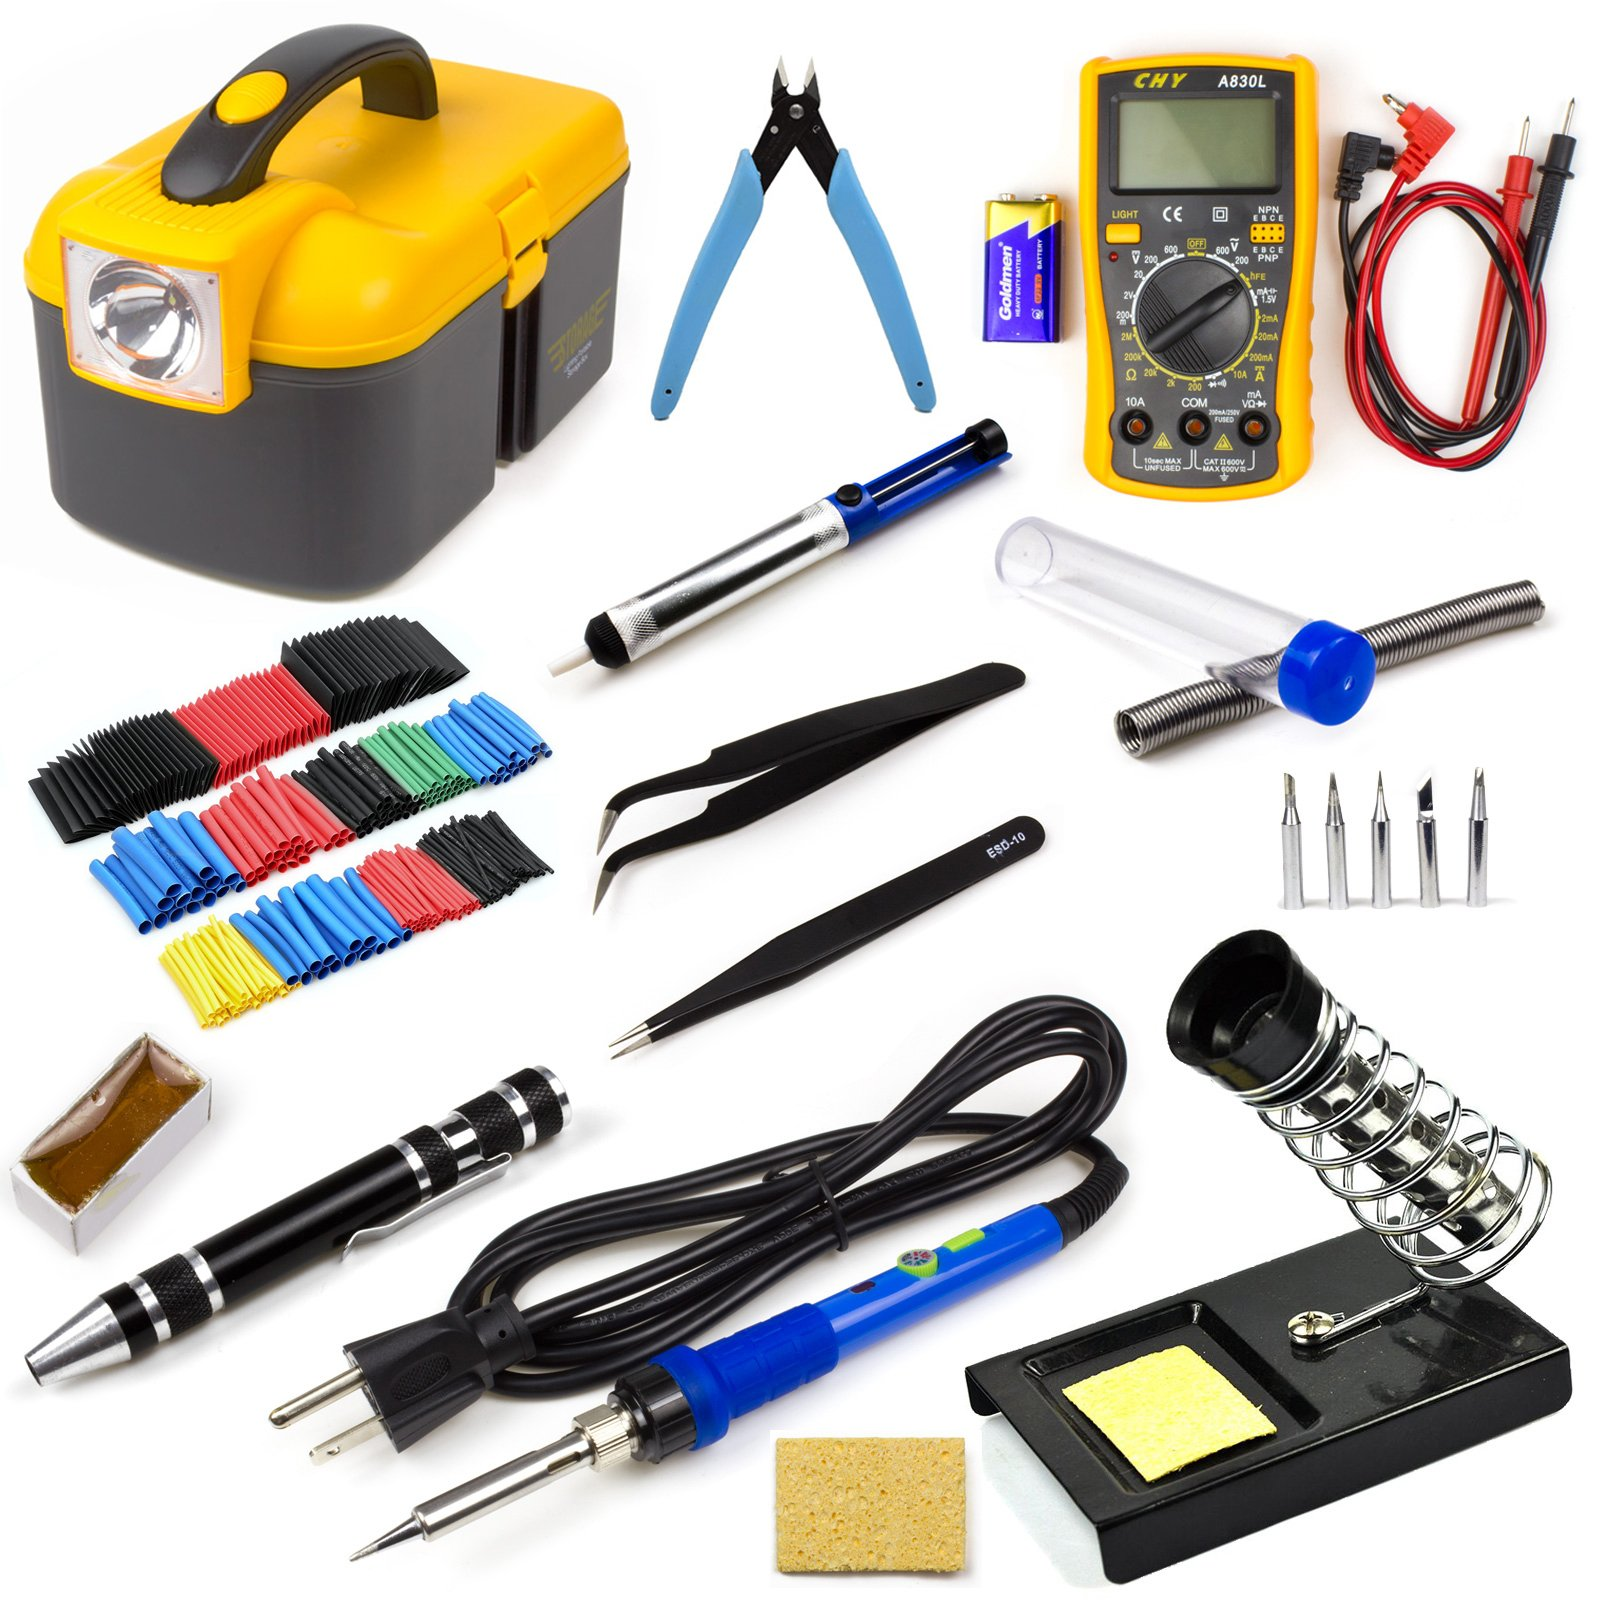 Ziss Soldering Iron Tool Kit Electronics Adjustable Temperature Welding Tool With 5pcs Soldering Tips and 328pcs Heat Shrinkable Tube